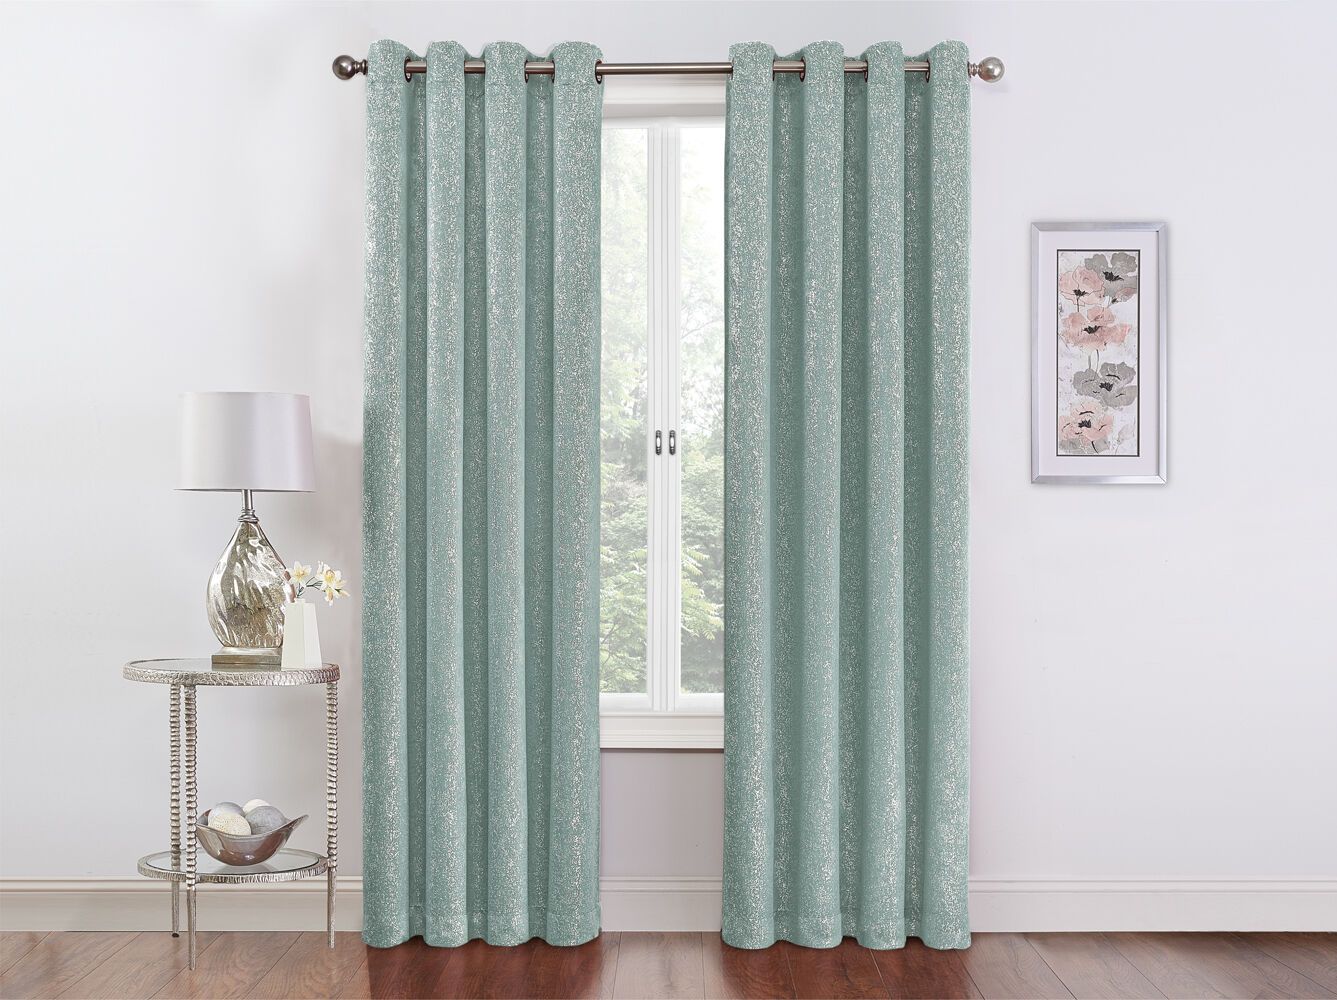 Teal Blackout Curtains Details About Regal Home Metallic Sparkle Thermal Grommet Blackout Curtains Assorted Colors